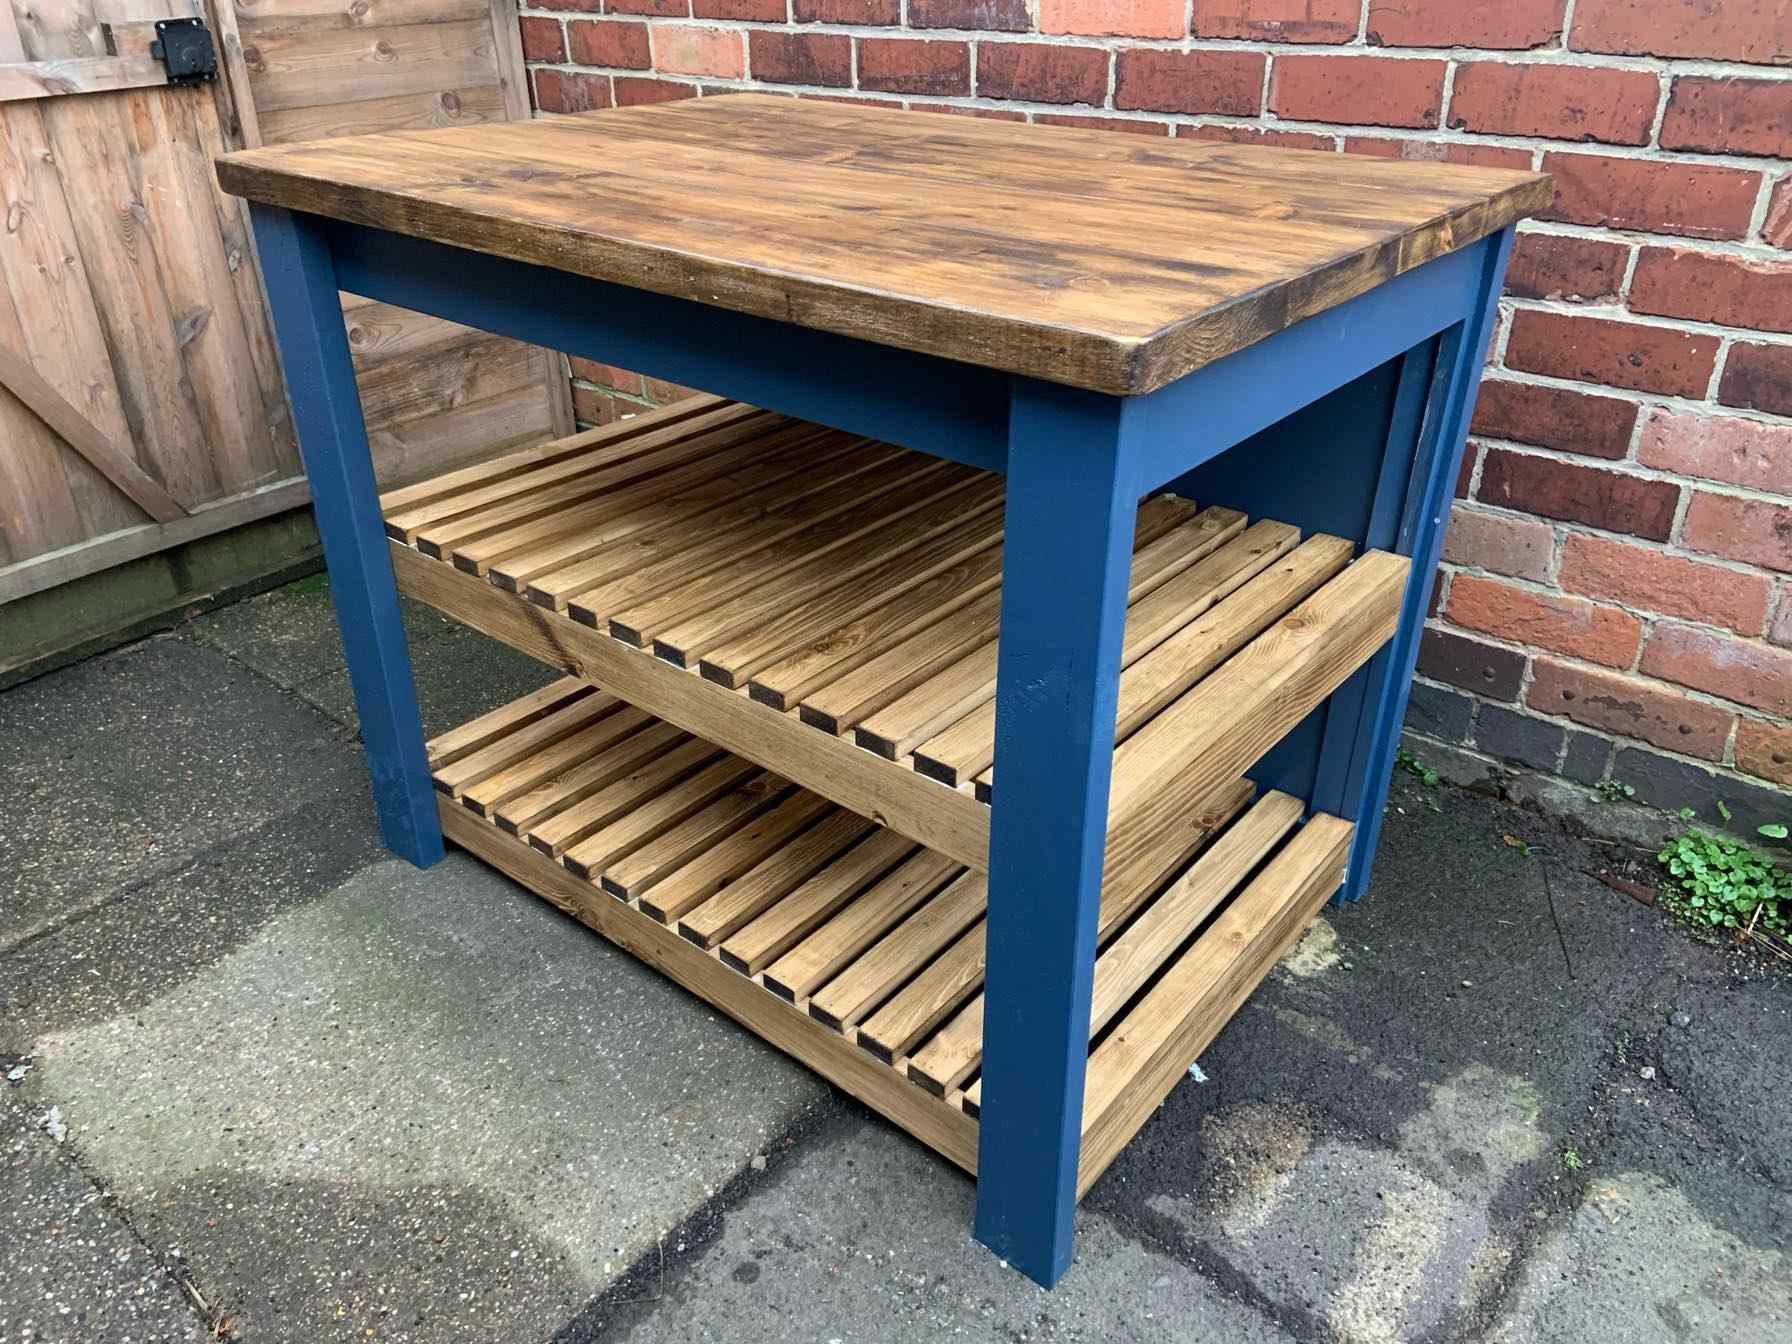 bespoke solid wood kitchen island with shelves